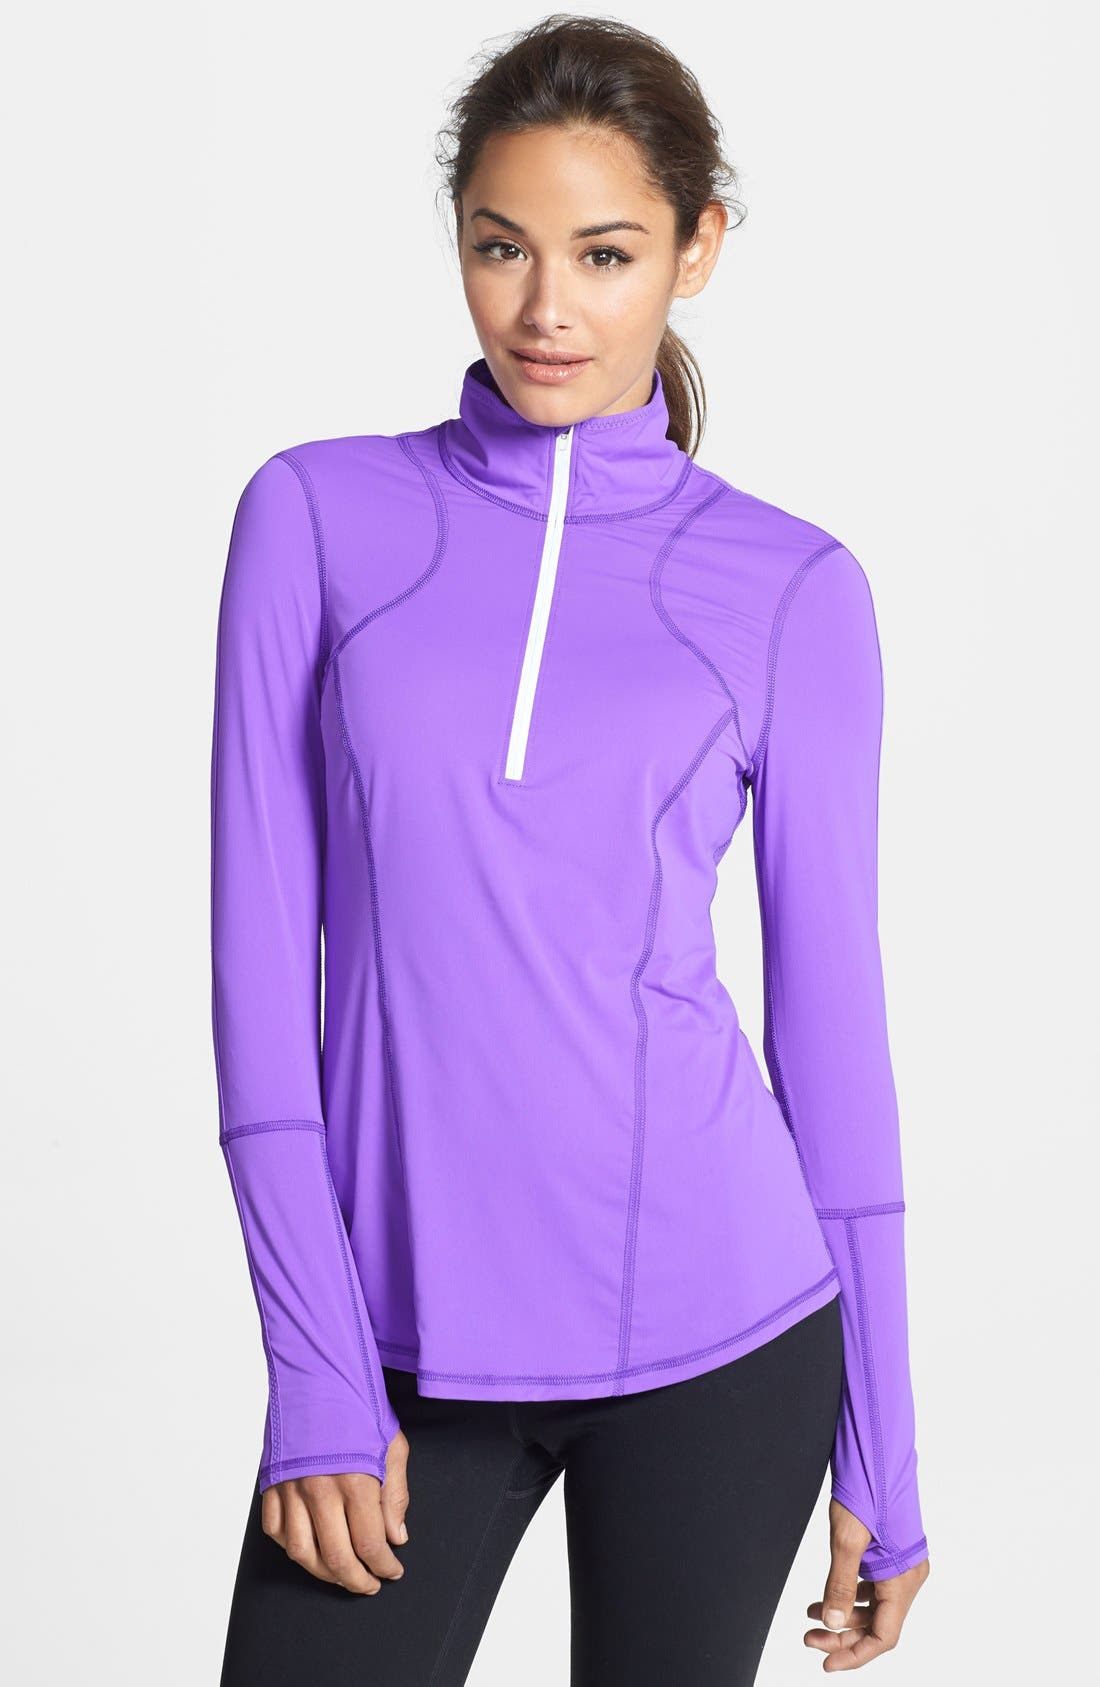 Main Image - Zella 'On the Run' Half Zip Top